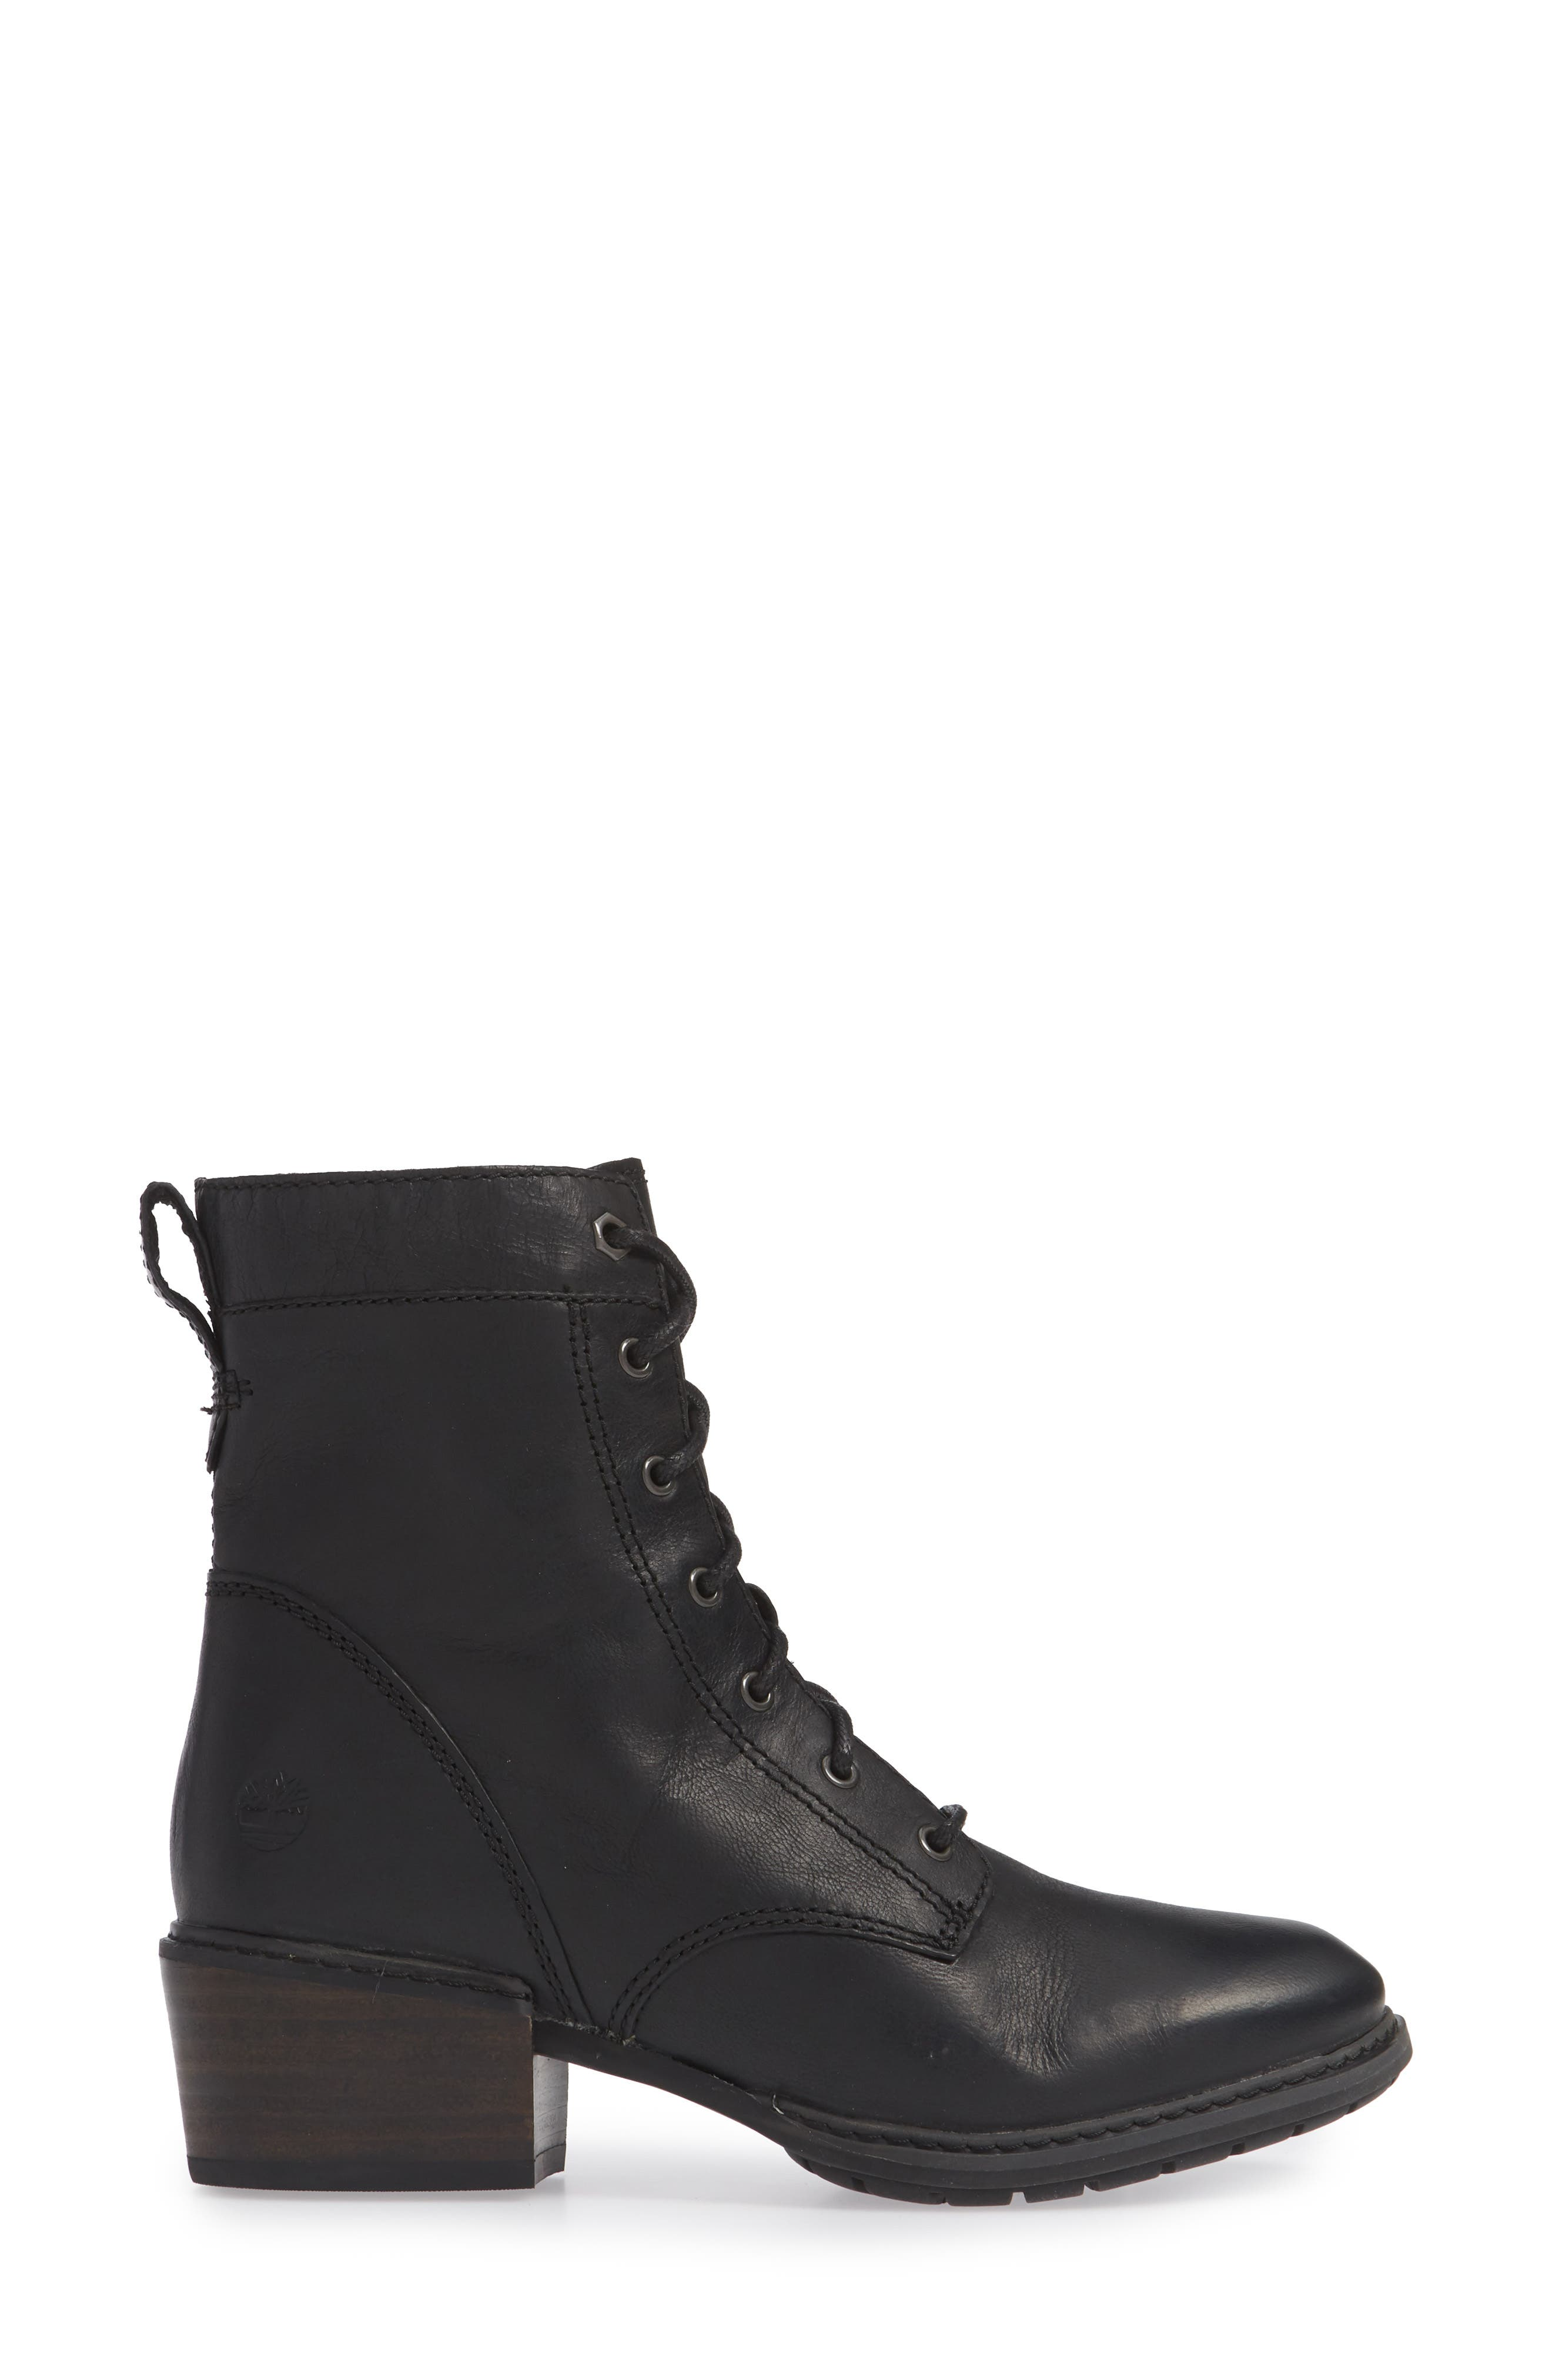 Sutherlin Bay Water Resistant Lace-Up Bootie,                             Alternate thumbnail 3, color,                             JET BLACK LEATHER